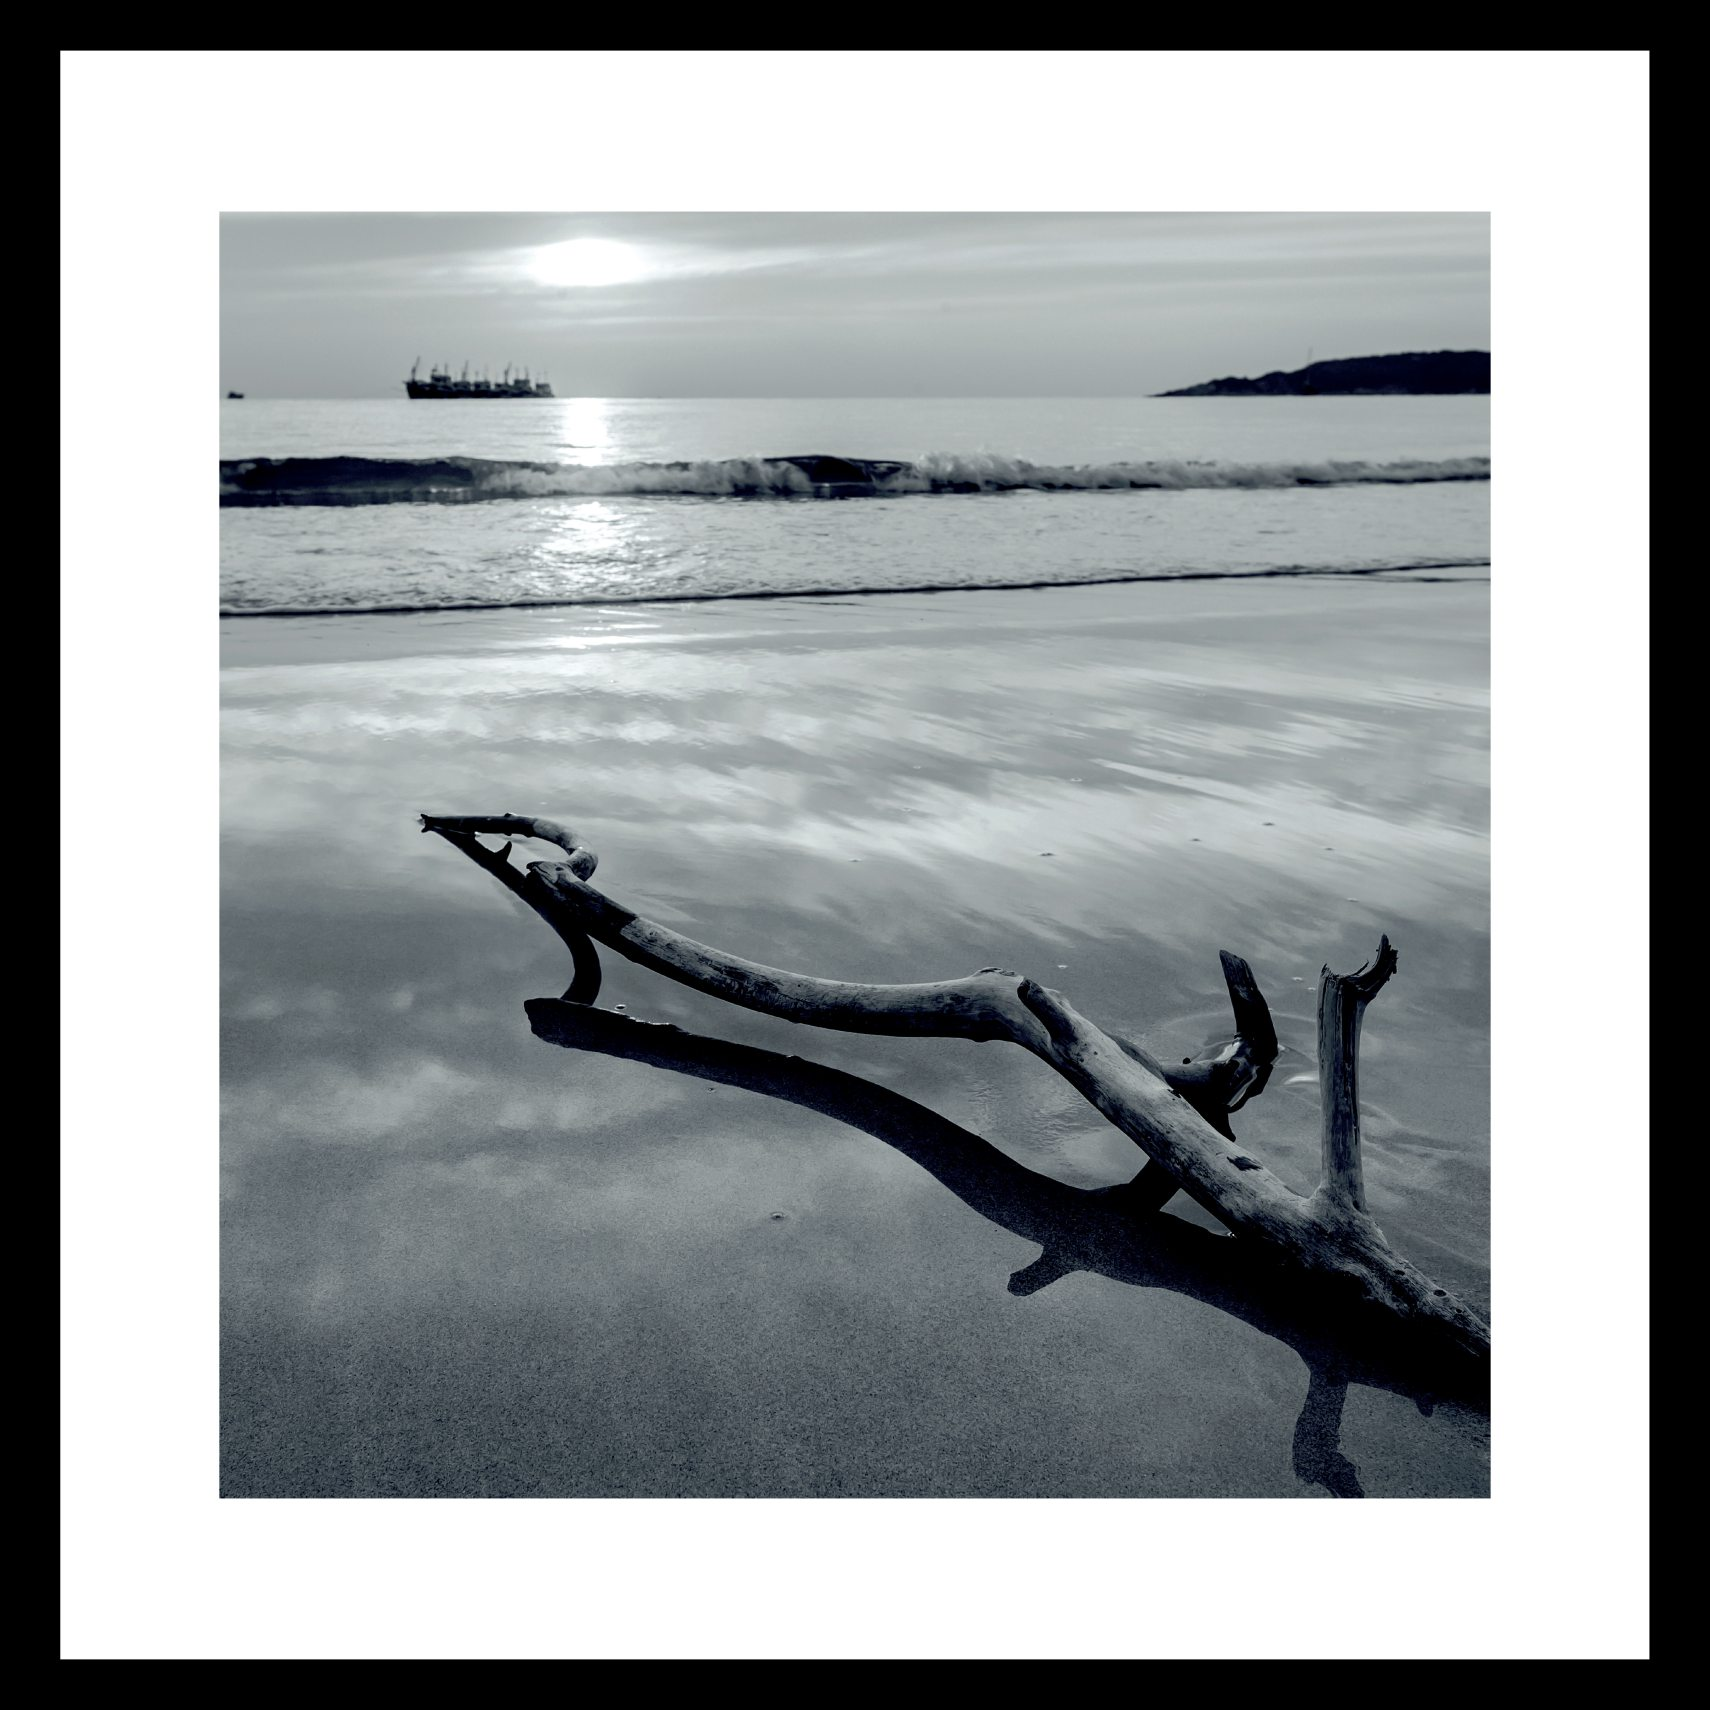 ART GALLERY Plakat 40 x 40 x 1,5 cm - Beach og ramme i 15 mm sort fyrretræ